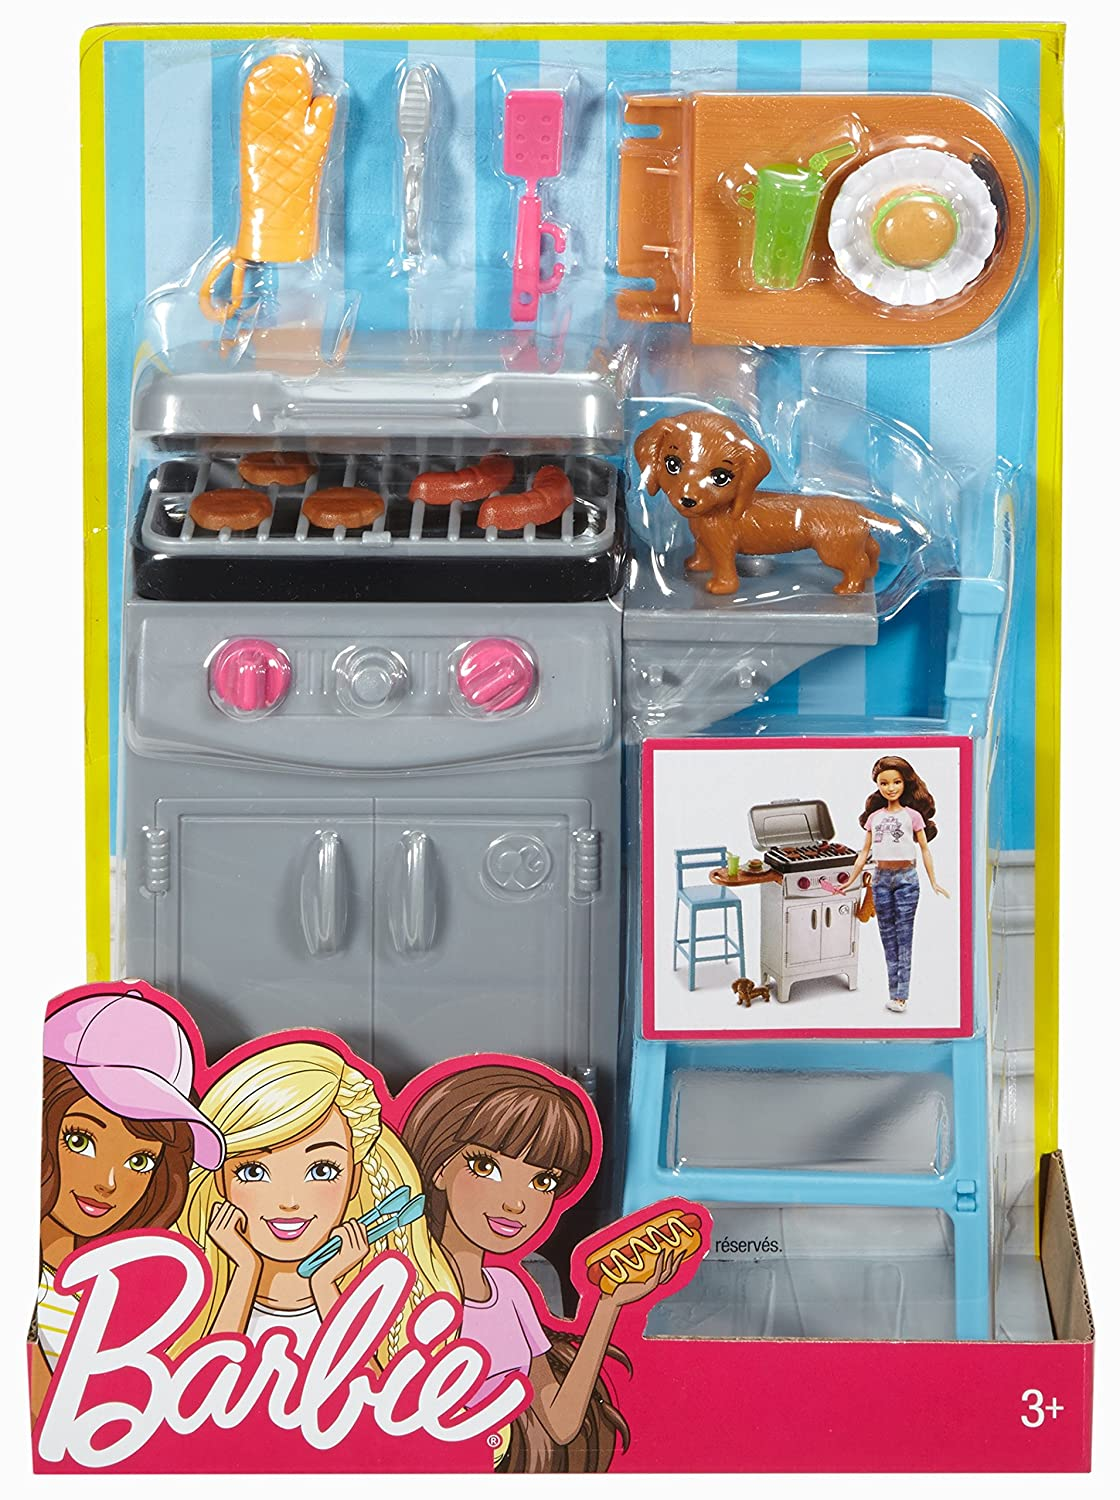 Amazon.com: Barbie BBQ Grill Furniture & Accessory Set: Toys & Games